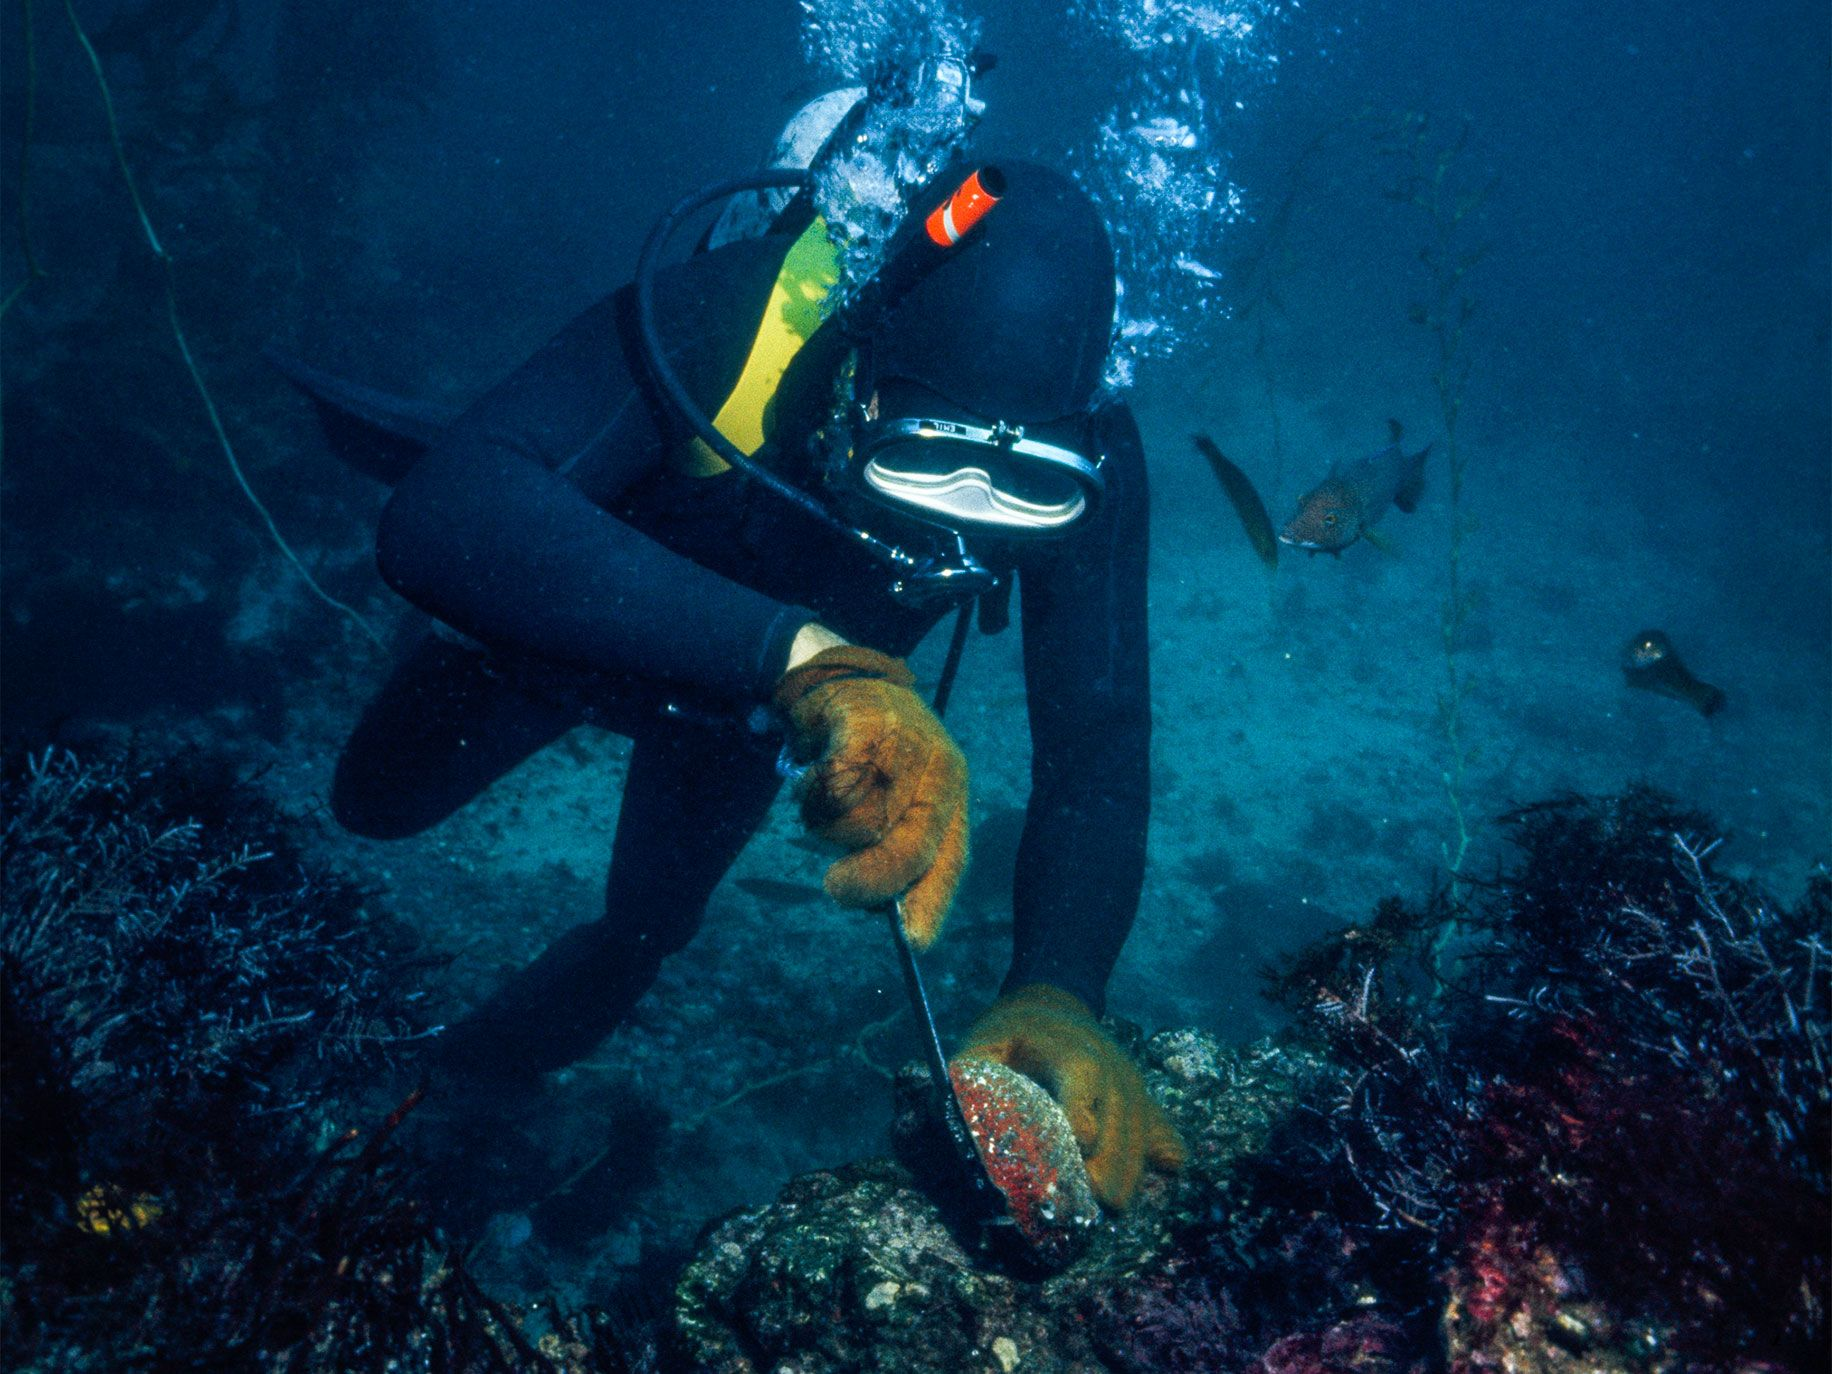 A diver pries an abalone off of a barnacle-encrusted rock. Worried about declining abalone populations, officials have banned diving for abalone.